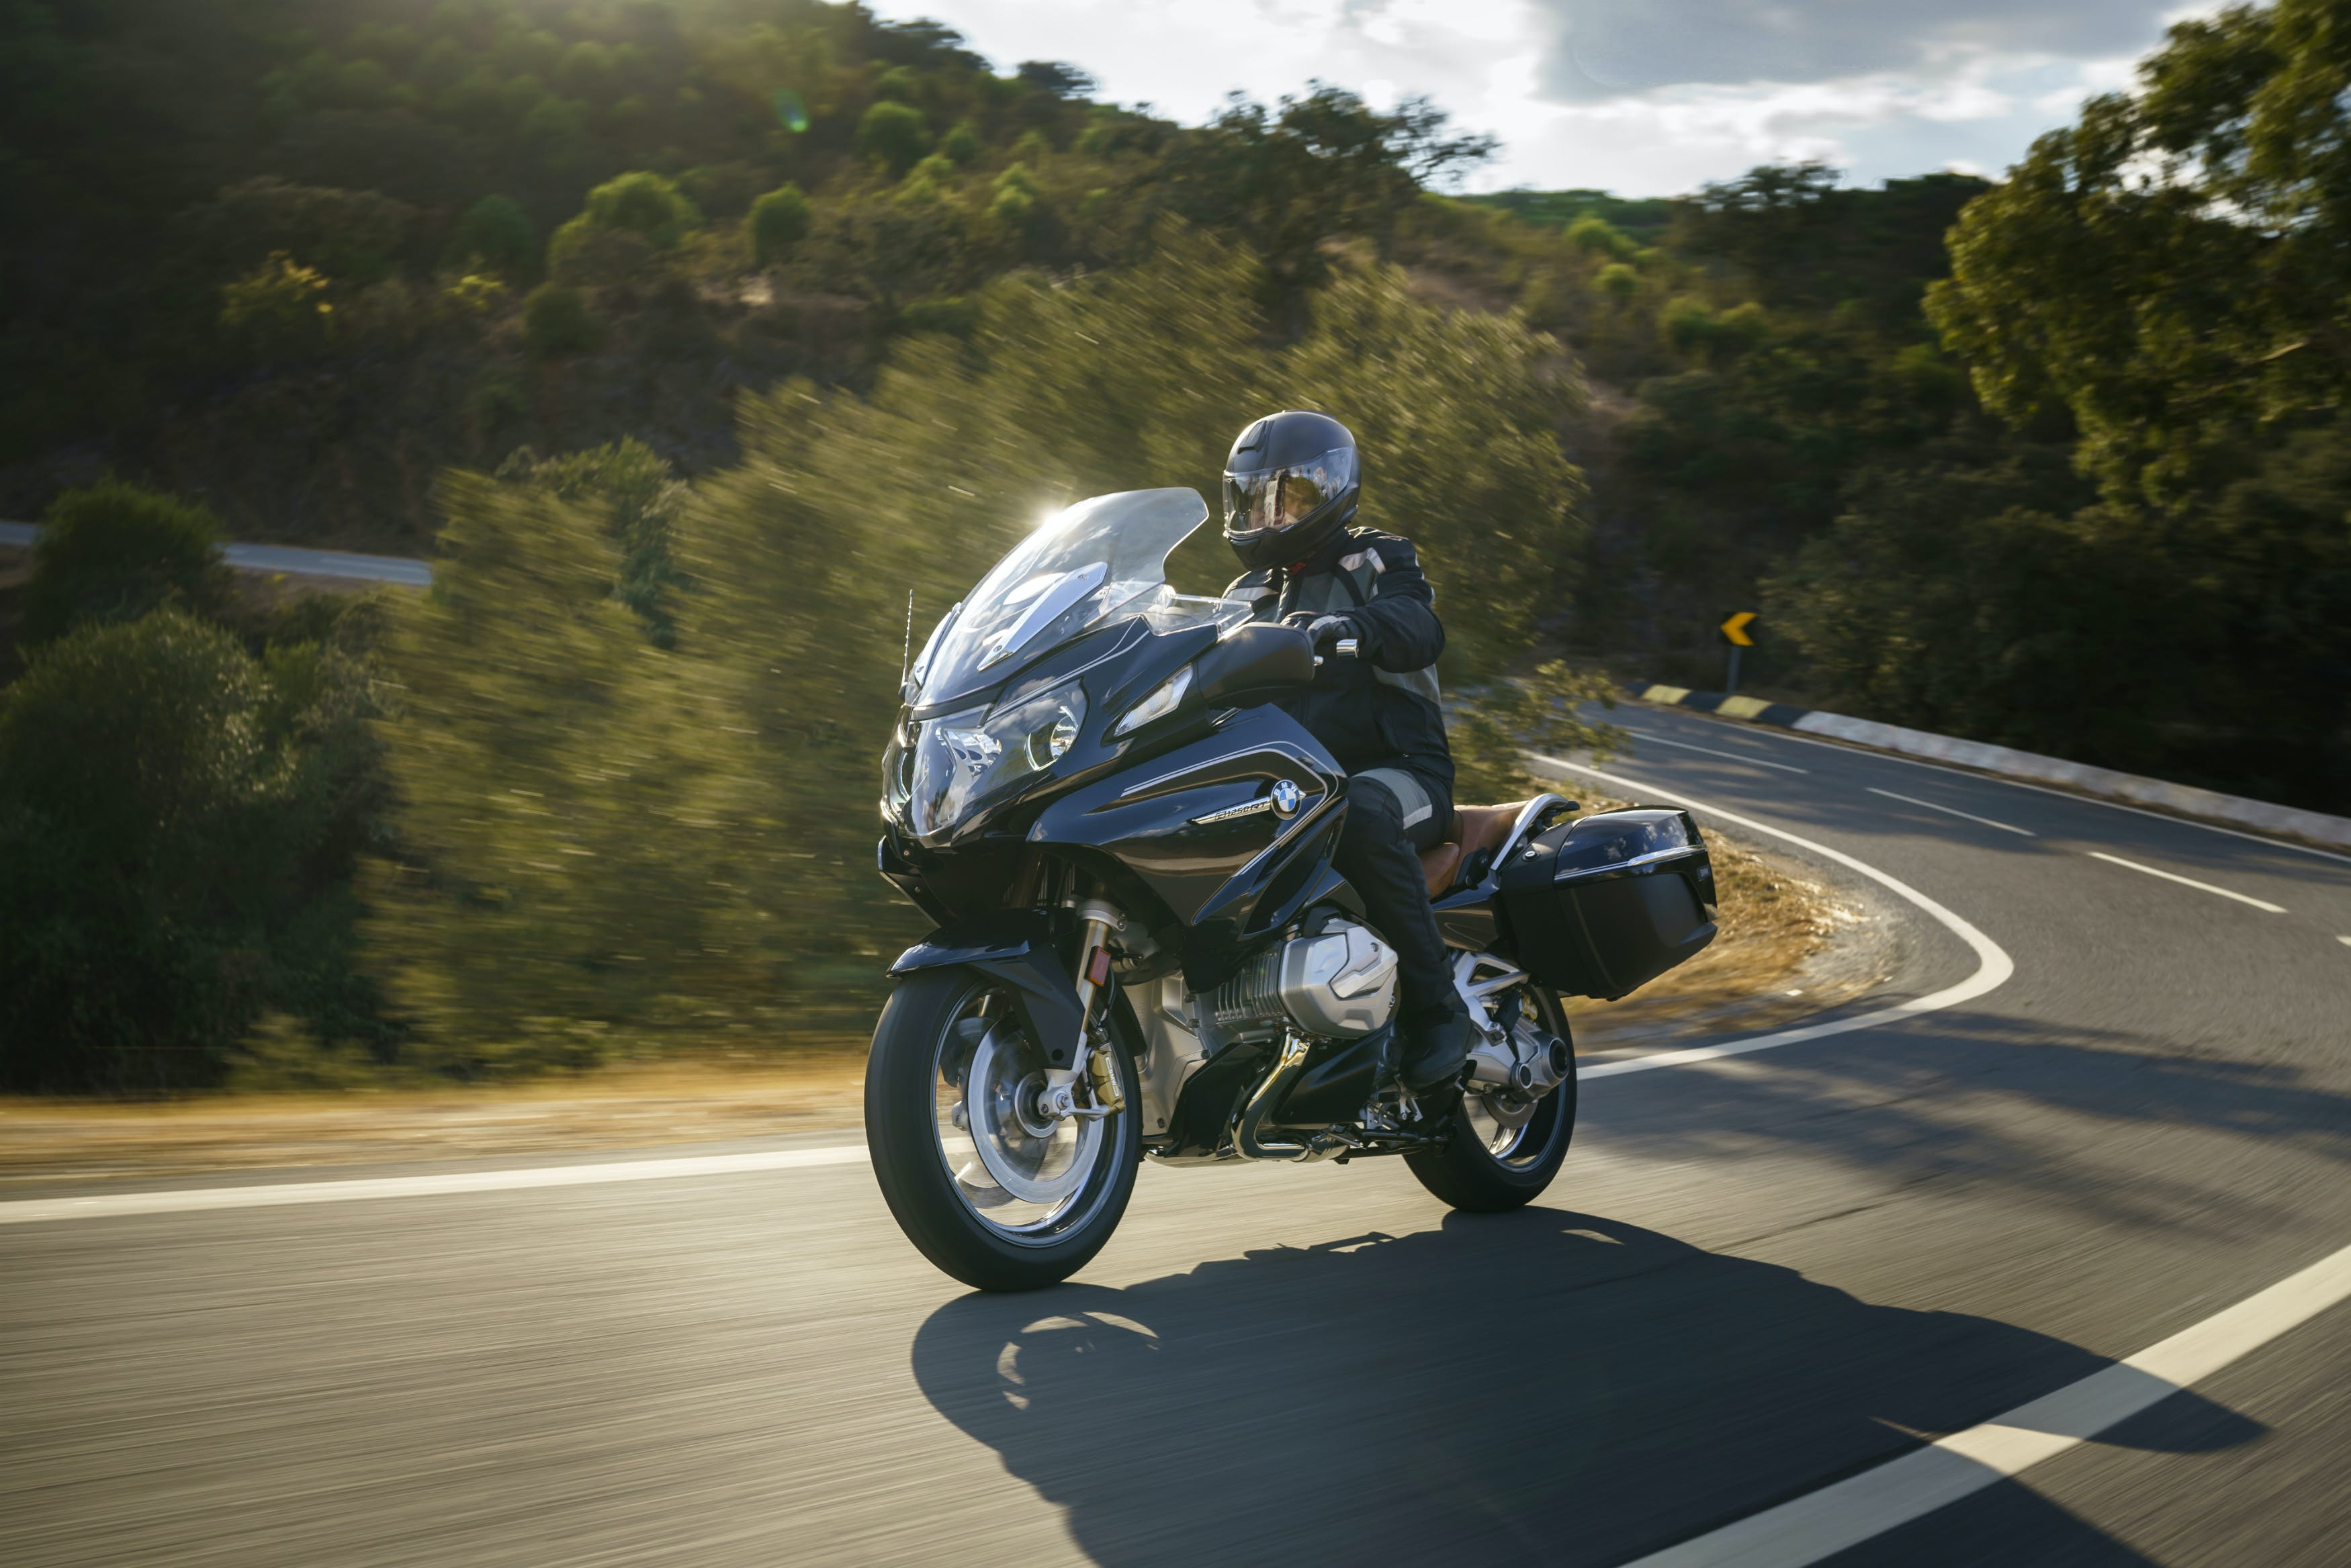 BMW R 1250 RT (SPORT) being ridden on the hill road